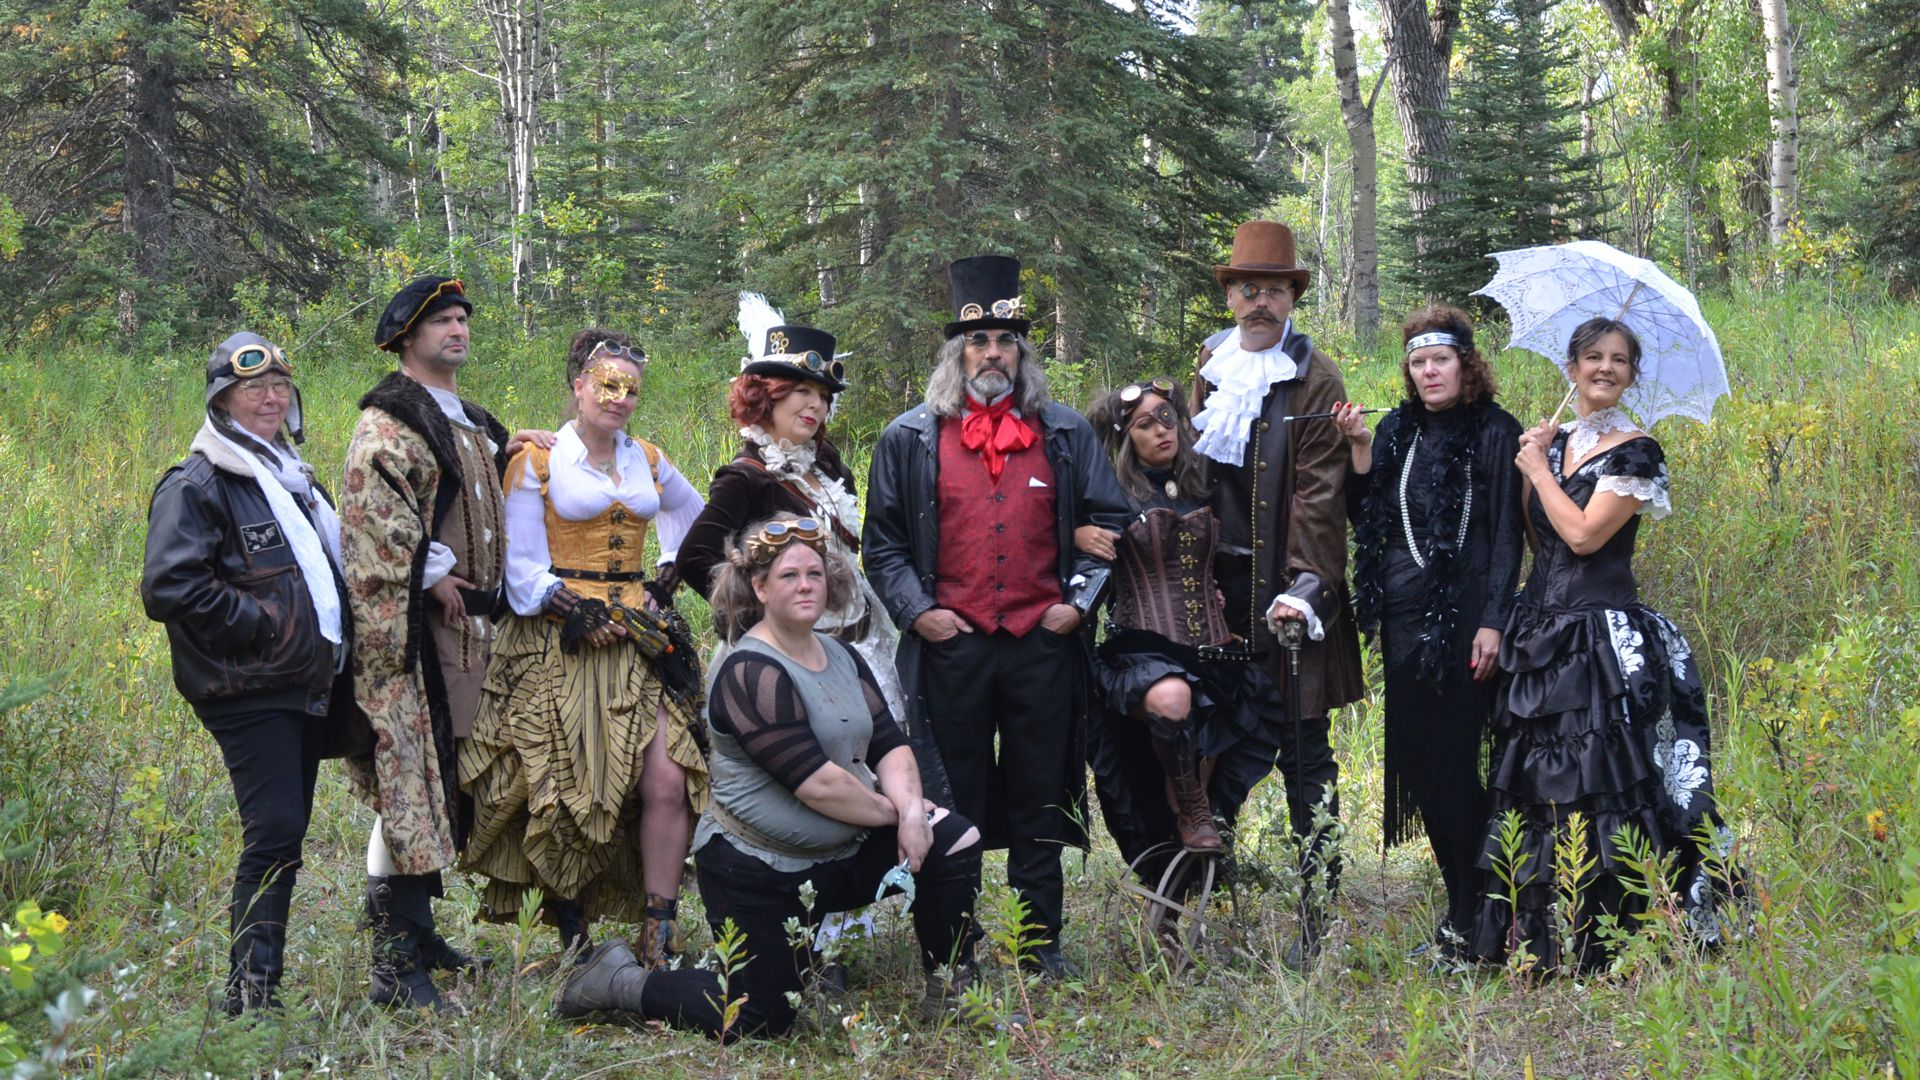 Group of SteamPunks in the forest at Time Island 2019